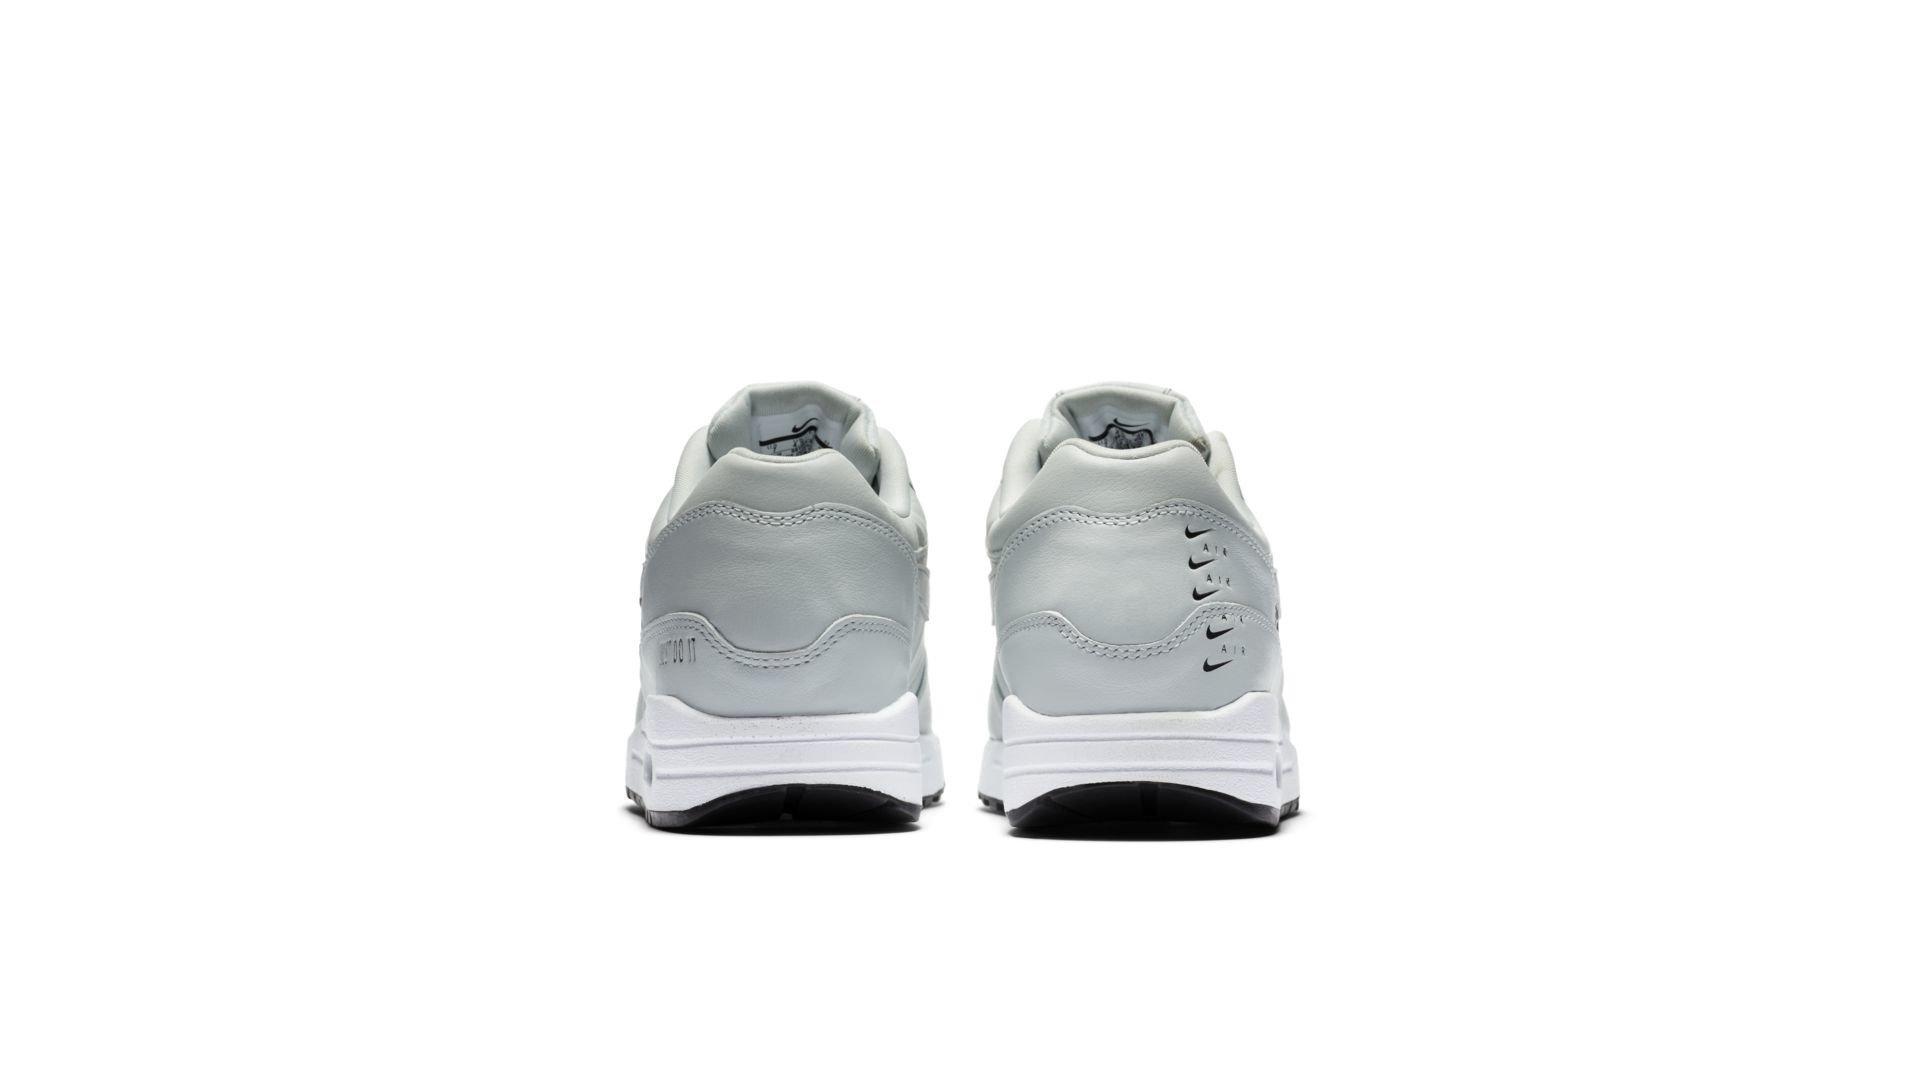 Nike Air Max 1 Just Do It 'Light Silver' (881101-004)